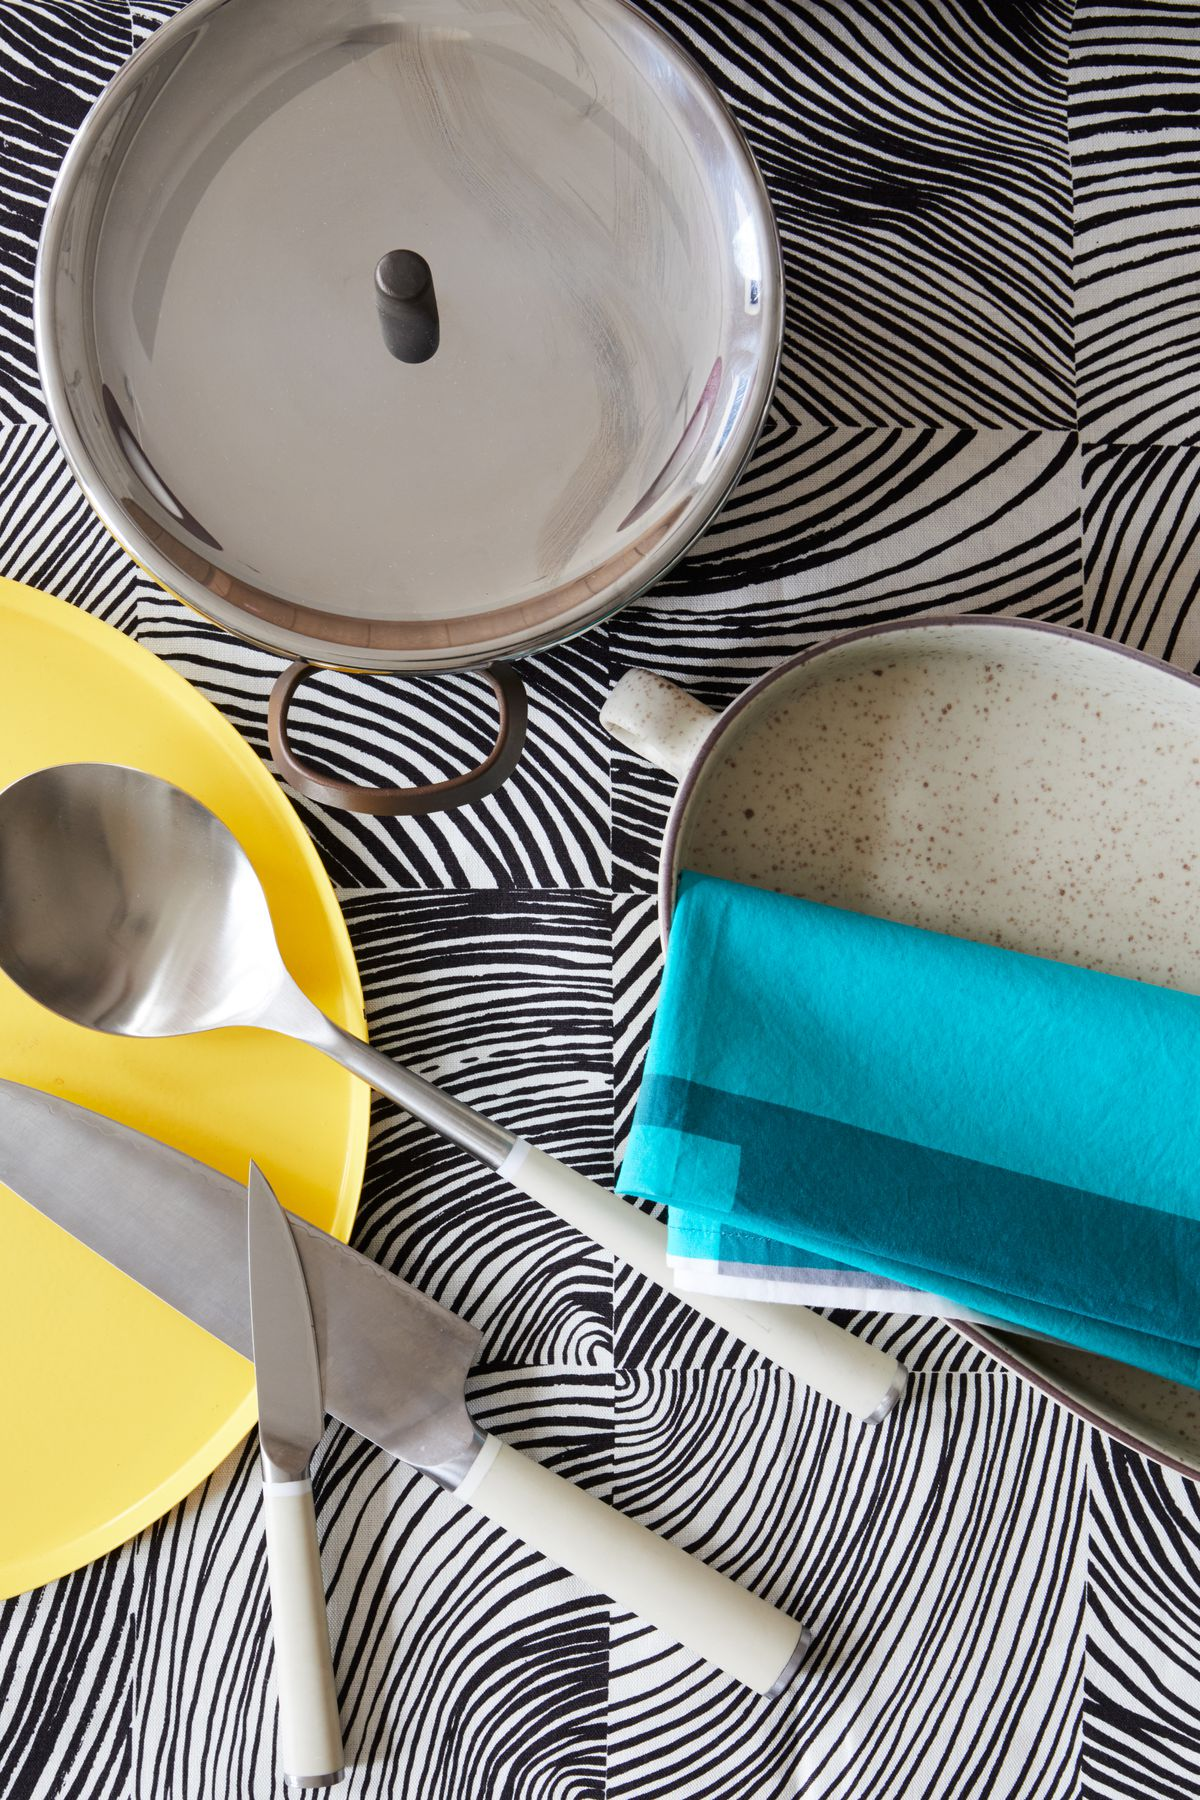 Cookware and utensils on a surface with a black and white abstract pattern.